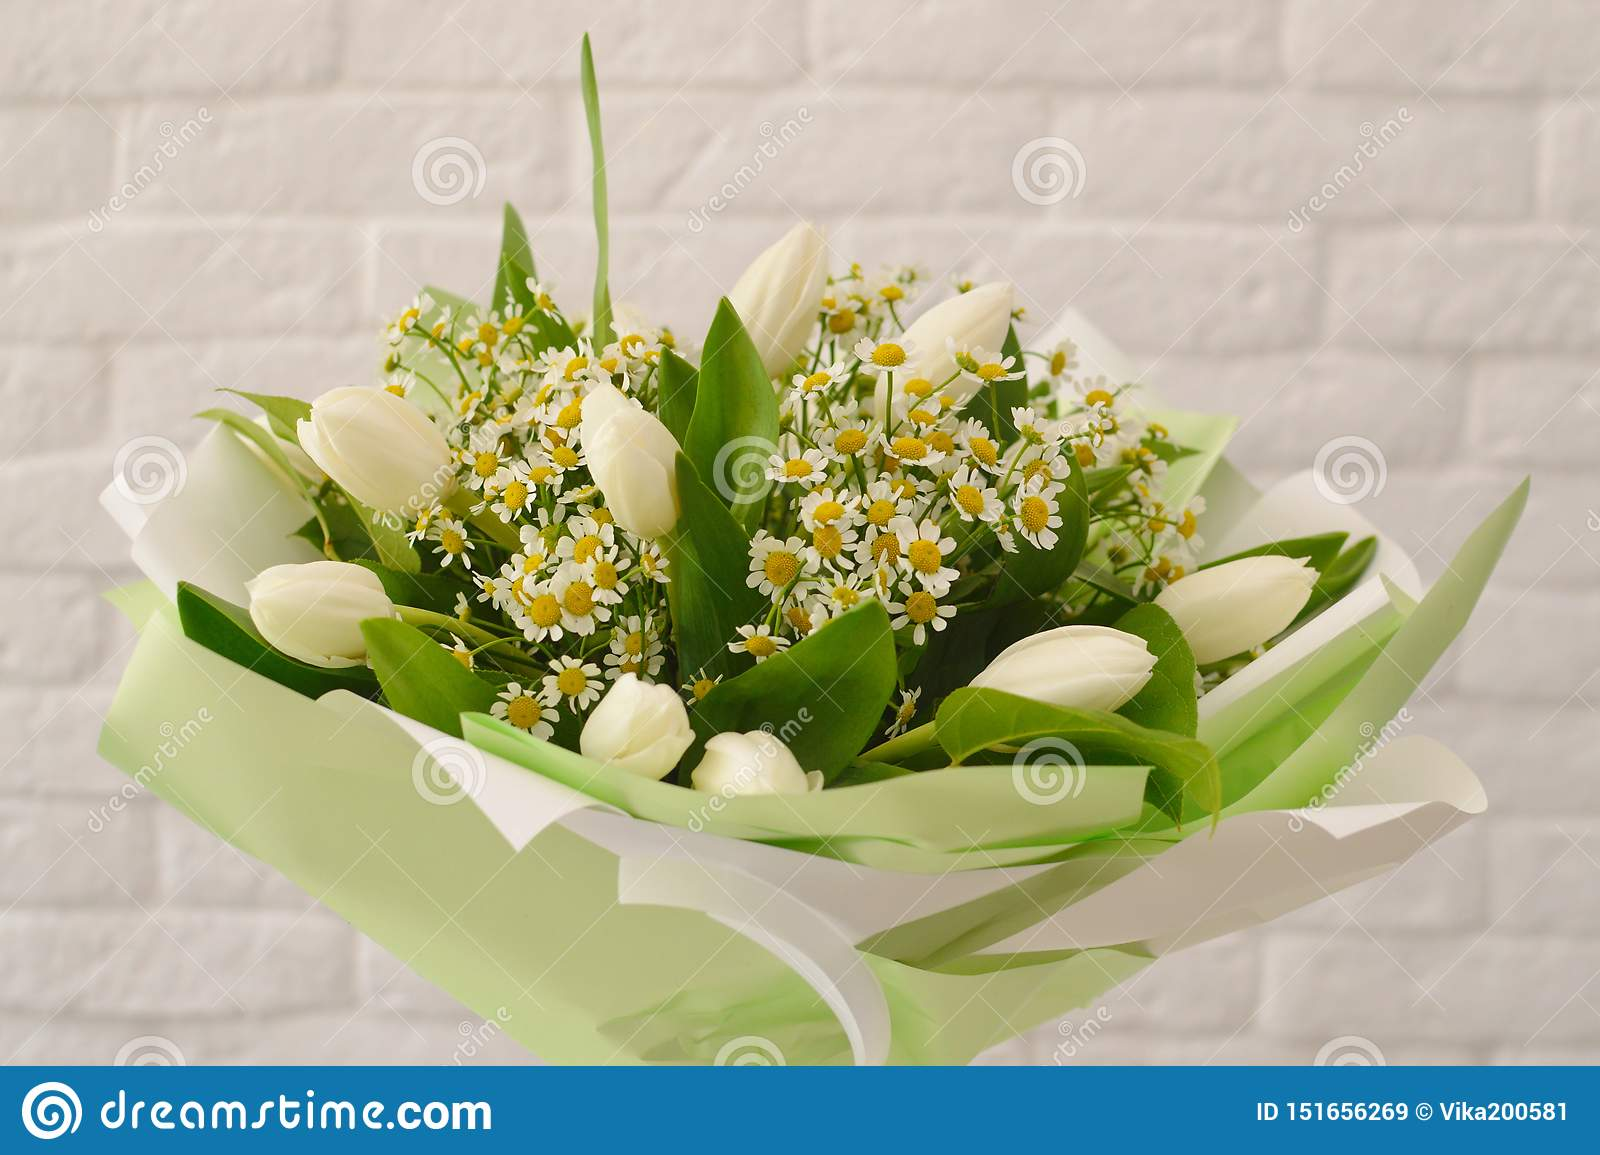 Beautiful bouquet of white flowers.